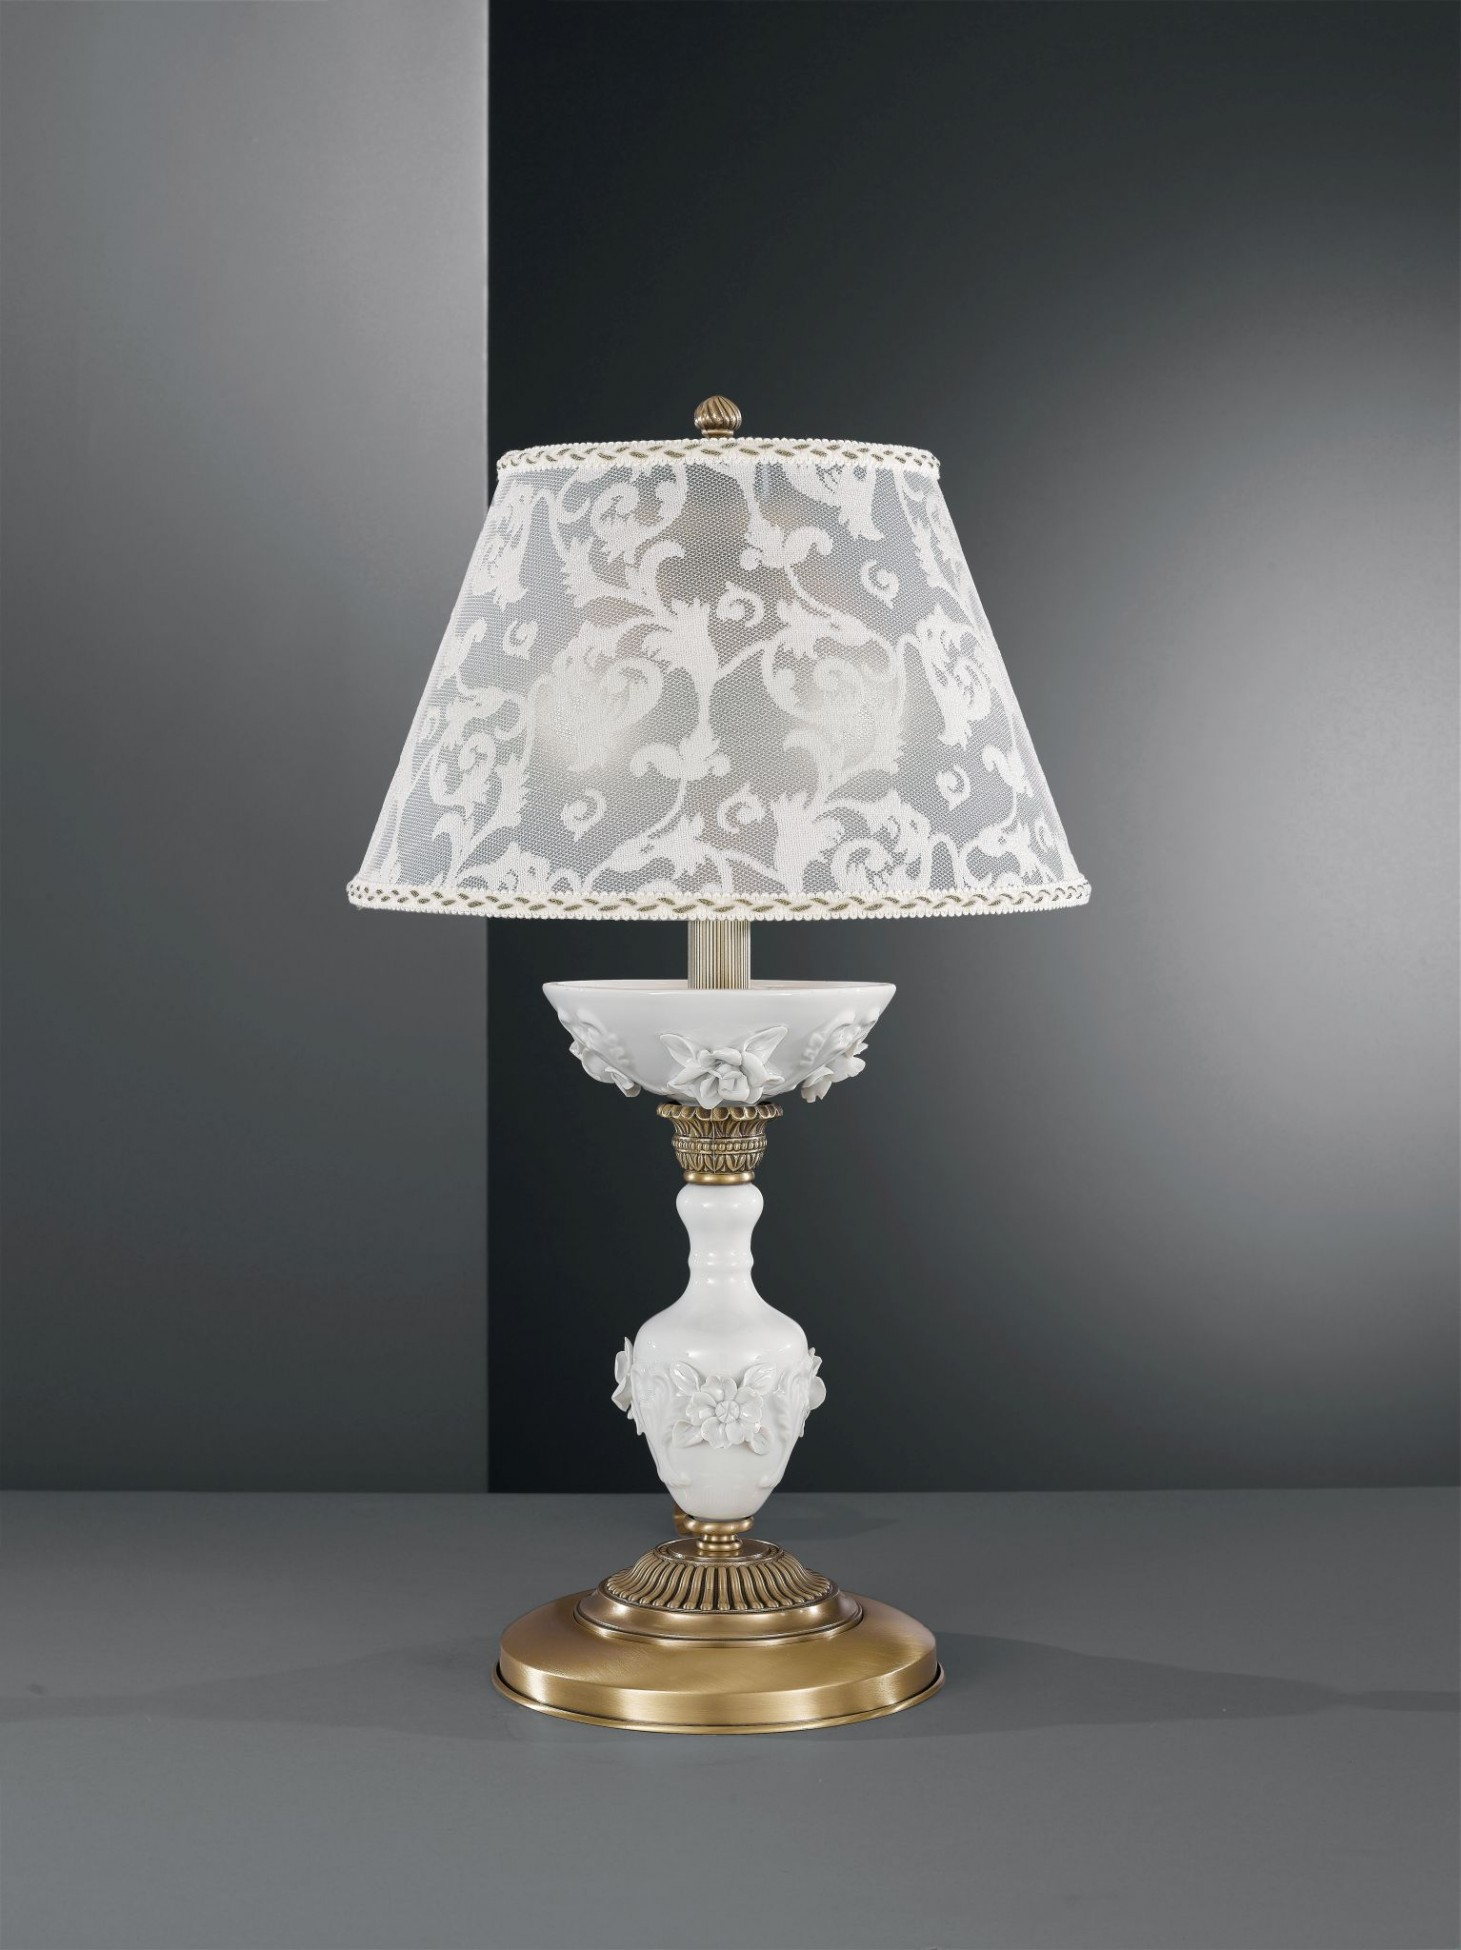 Brass Table Lamp With White Porcelain And Lamp Shade